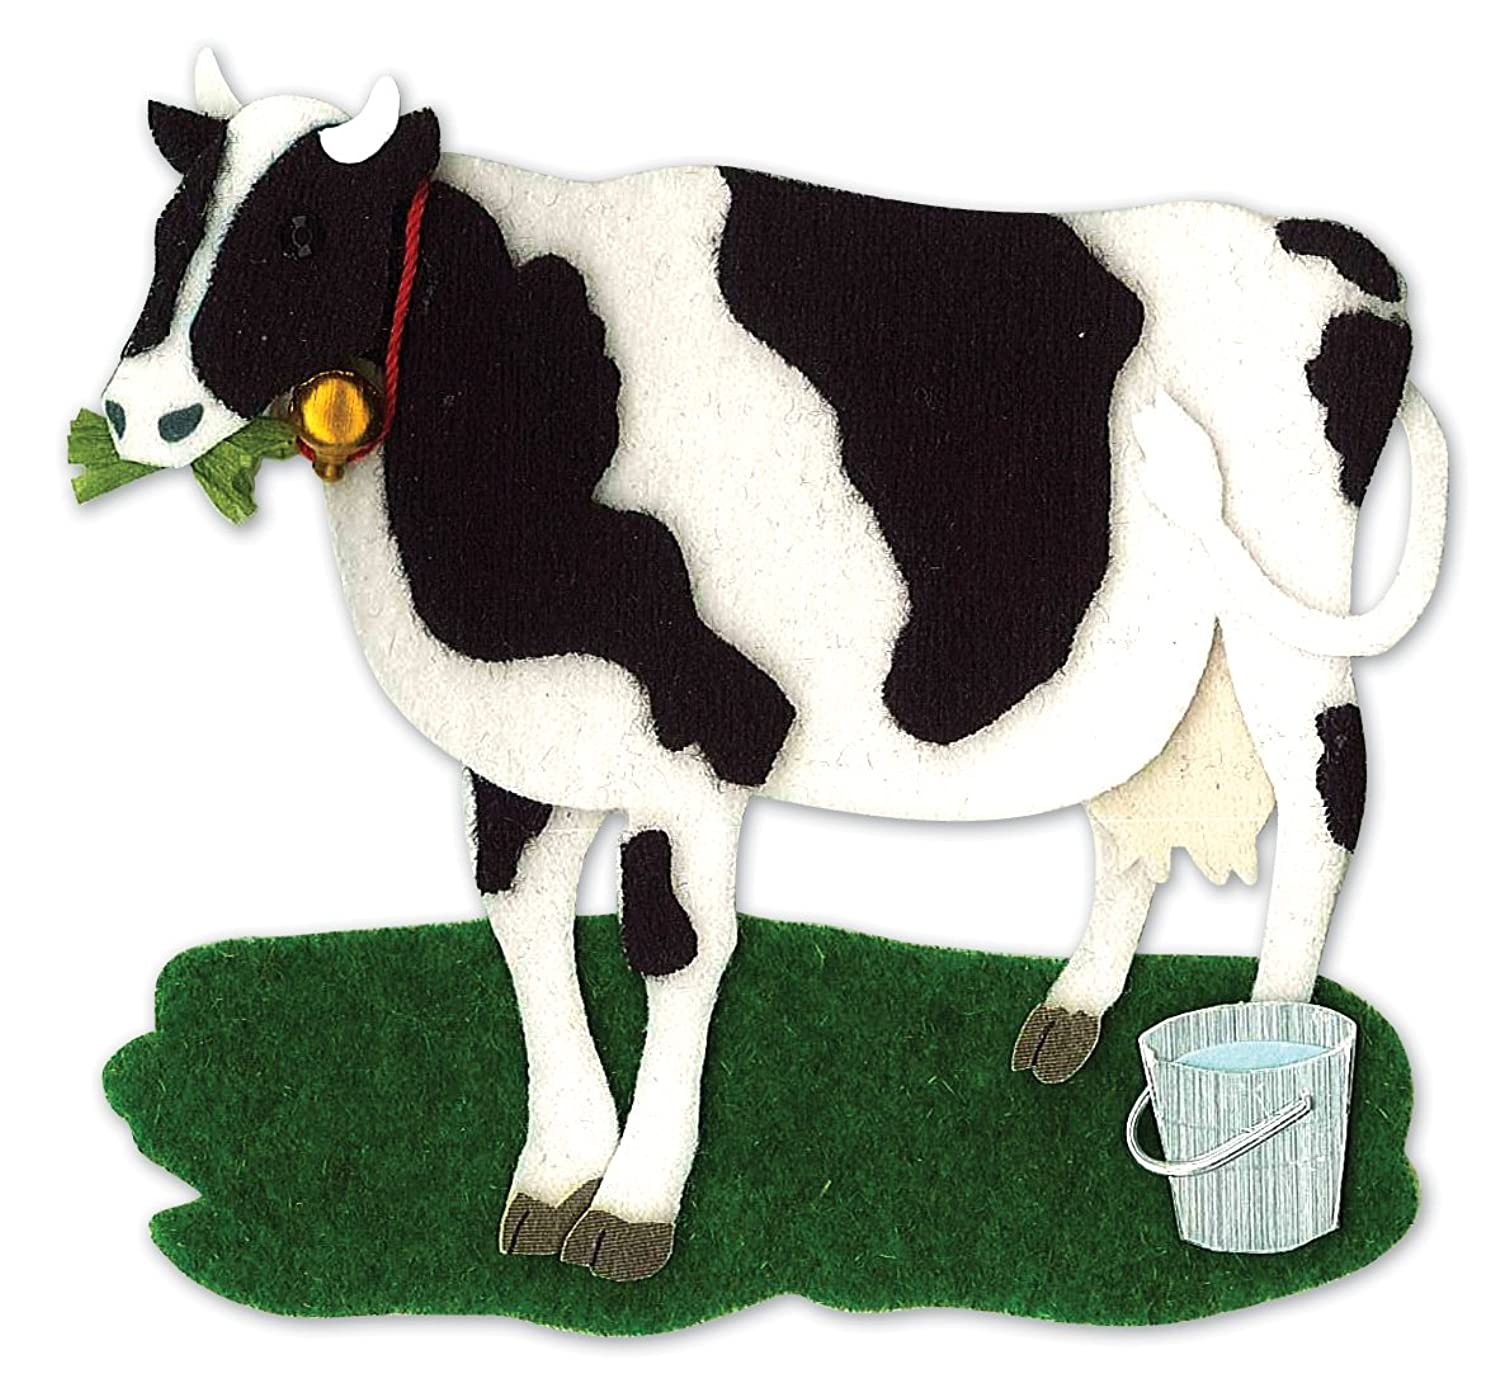 Sticko & Jolee's By You Dimensional Embellishments: Cow